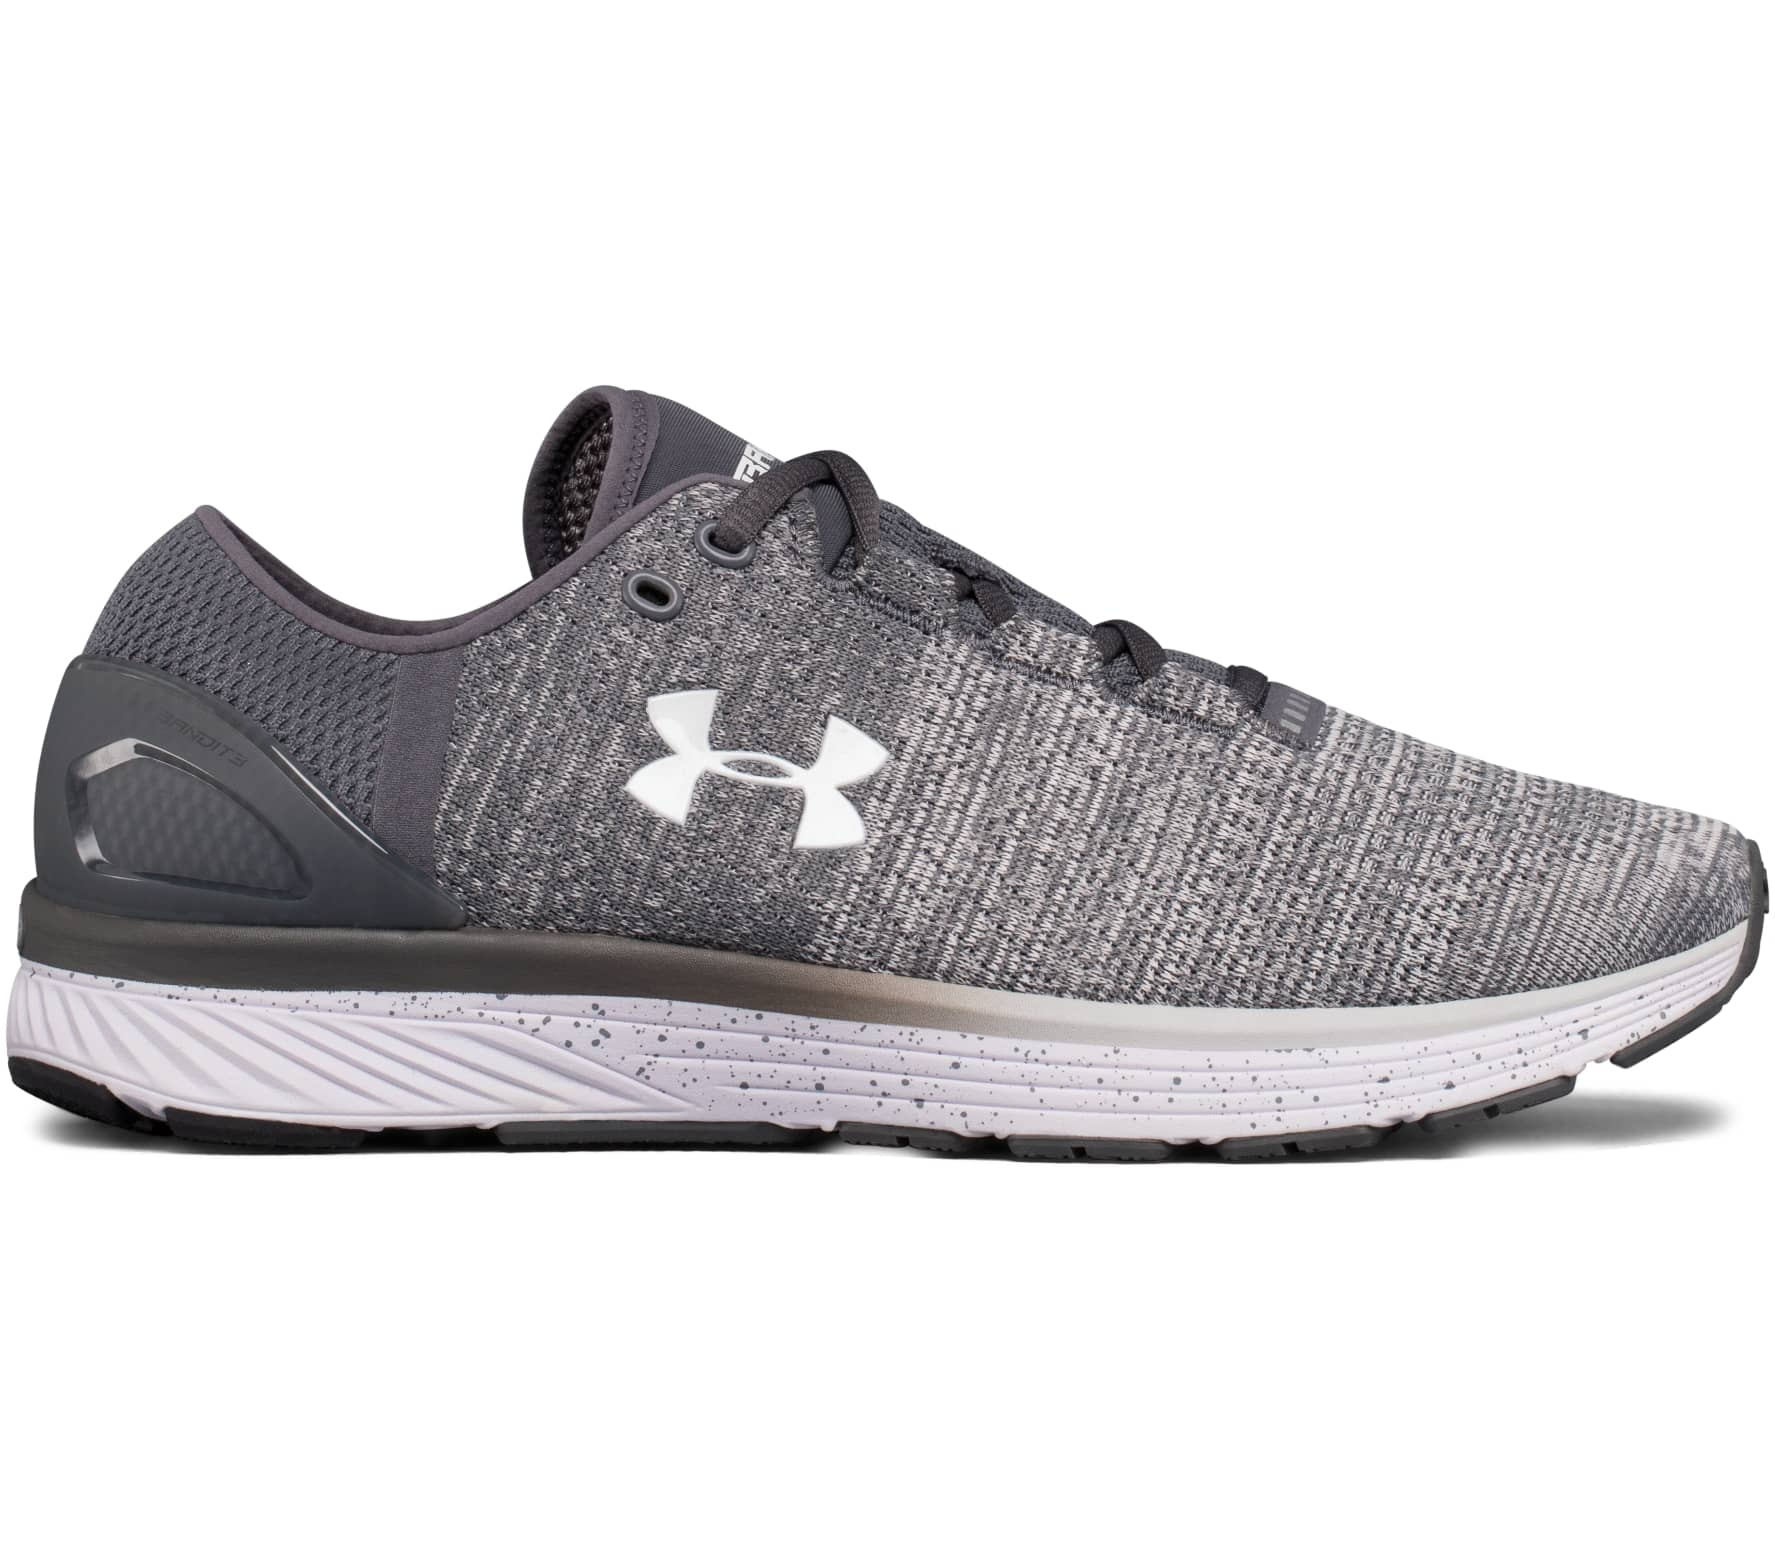 2350efa91510 Under Armour - Charged Bandit 3 men s running shoes (grey) - buy it ...